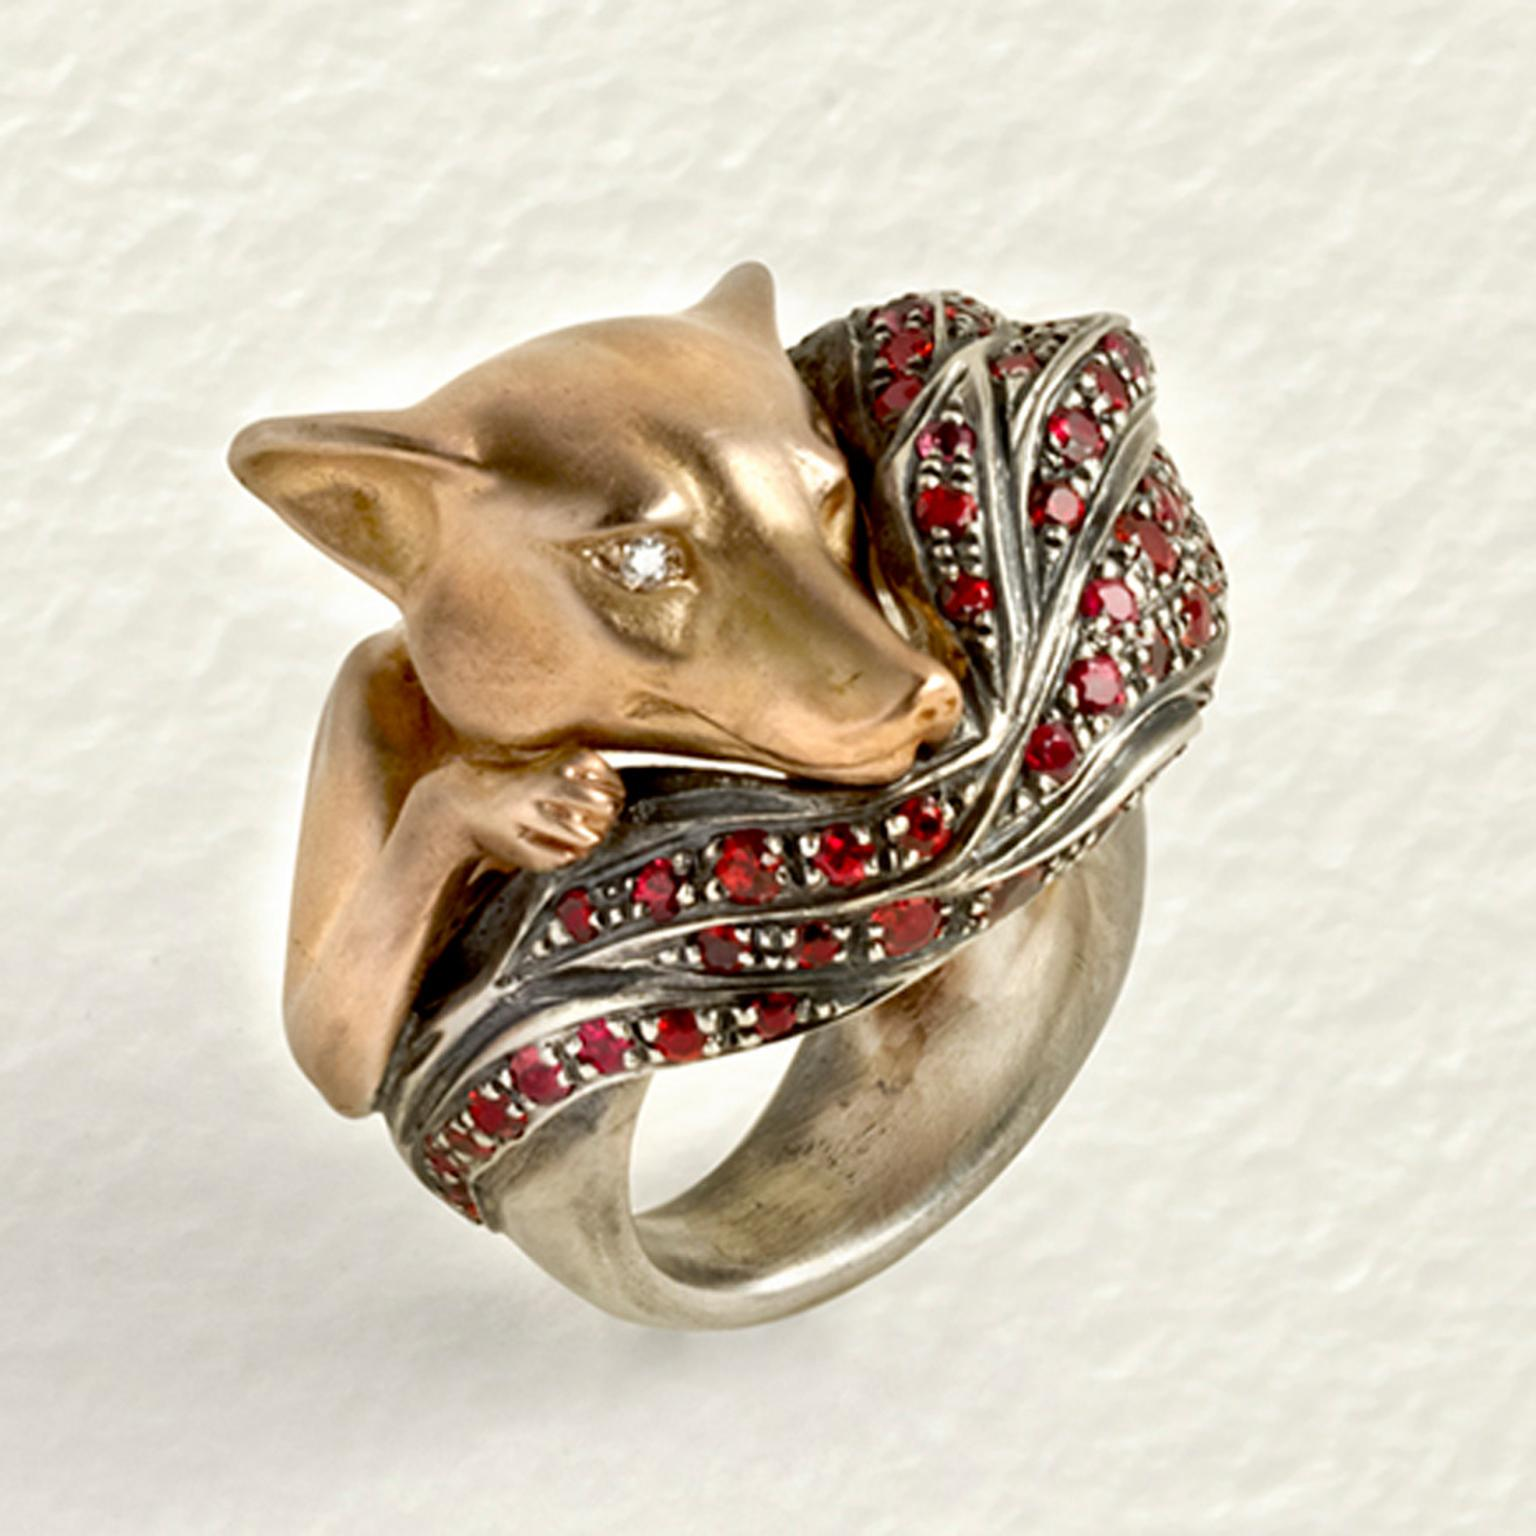 Elvira Cammarata Fox ring.